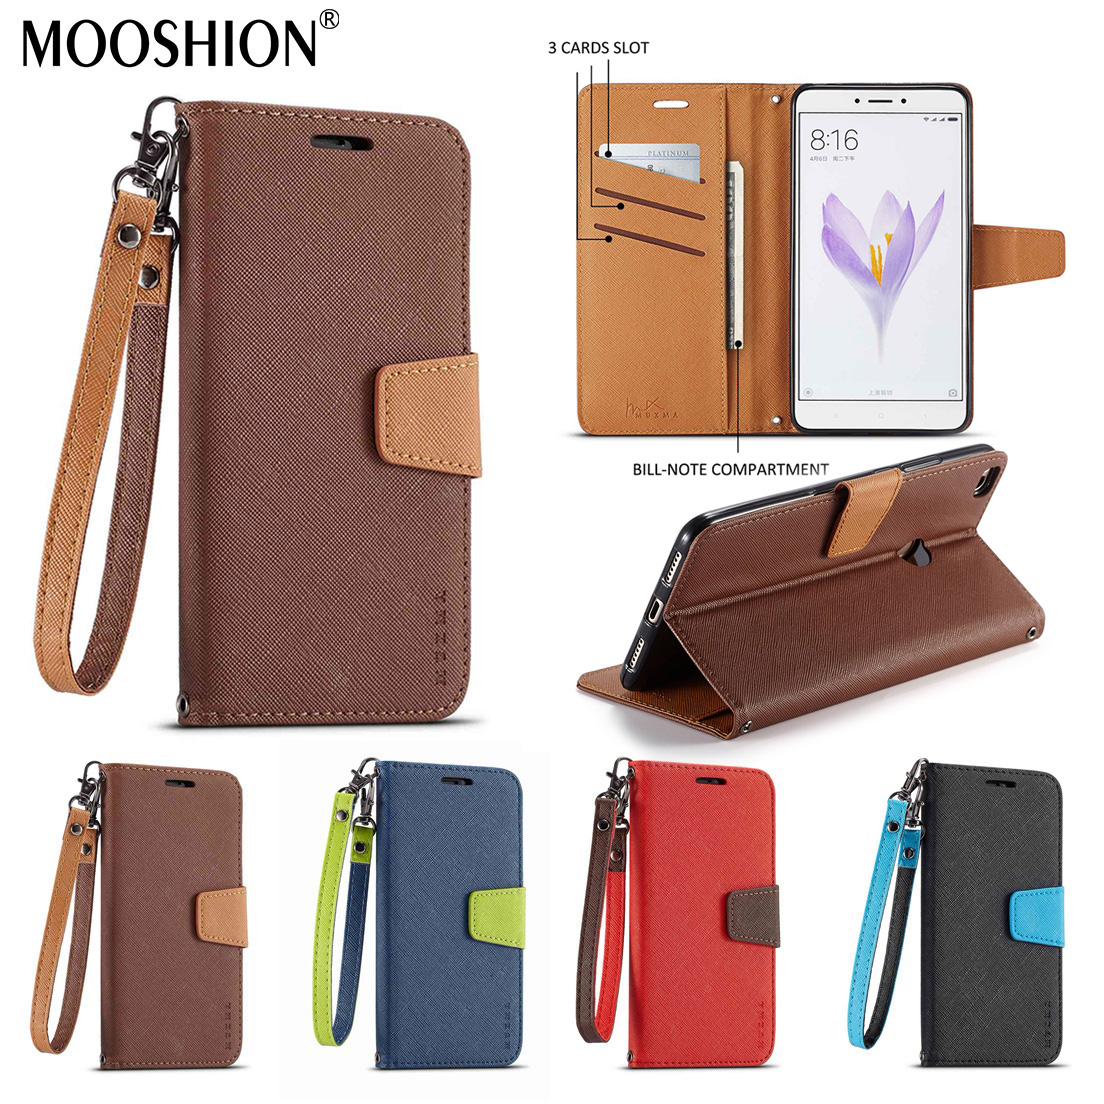 Mooshion Cases for For Xiaomi mi Max 2 Case PU Leather Magnetic Flip Wallet cover for xiaomi max 2 mi max2 Silicone Cards Slot